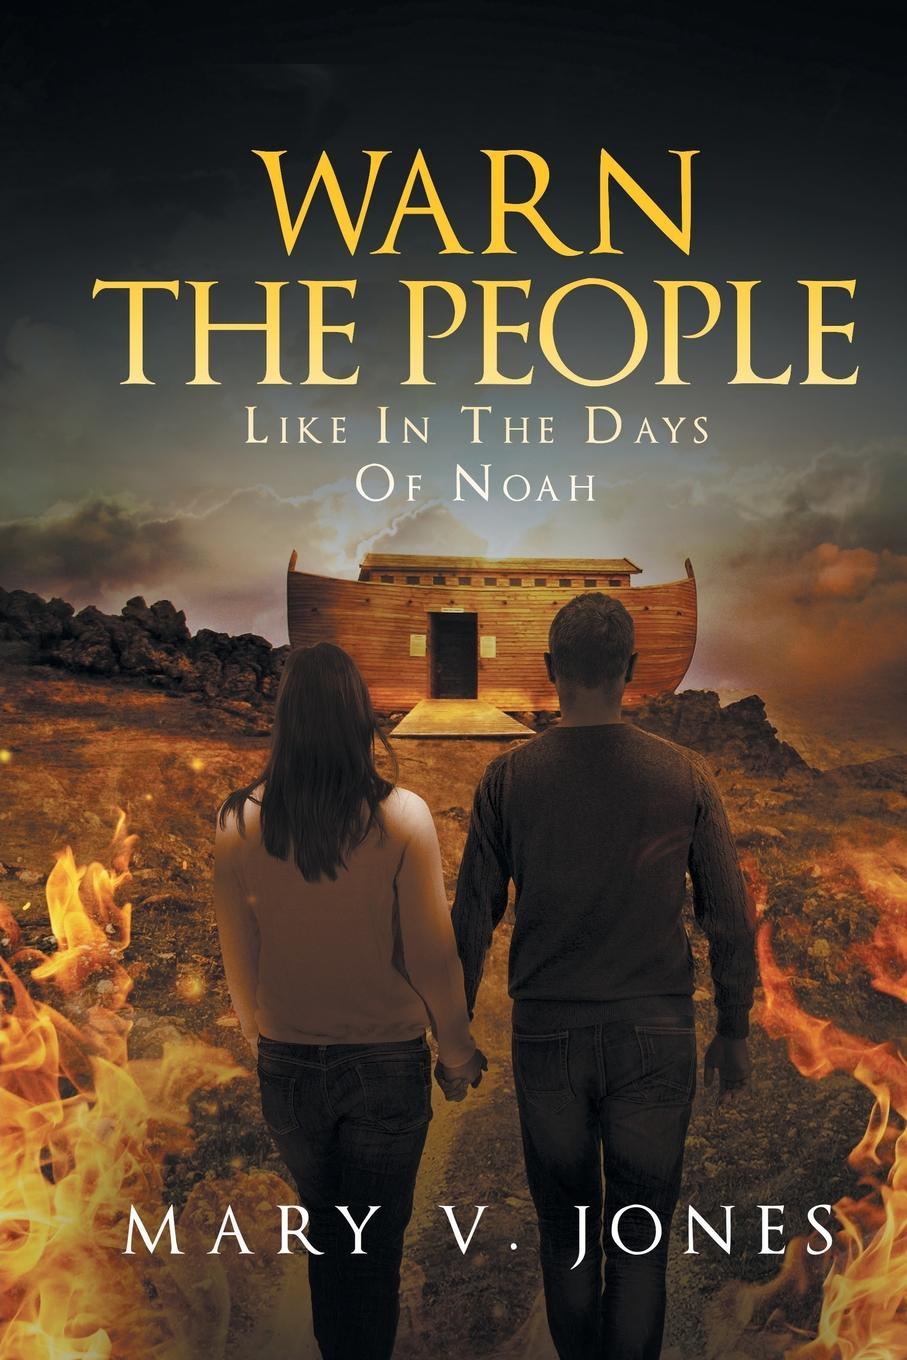 Mary V. Jones Warn The People Like In The Days Of Noah